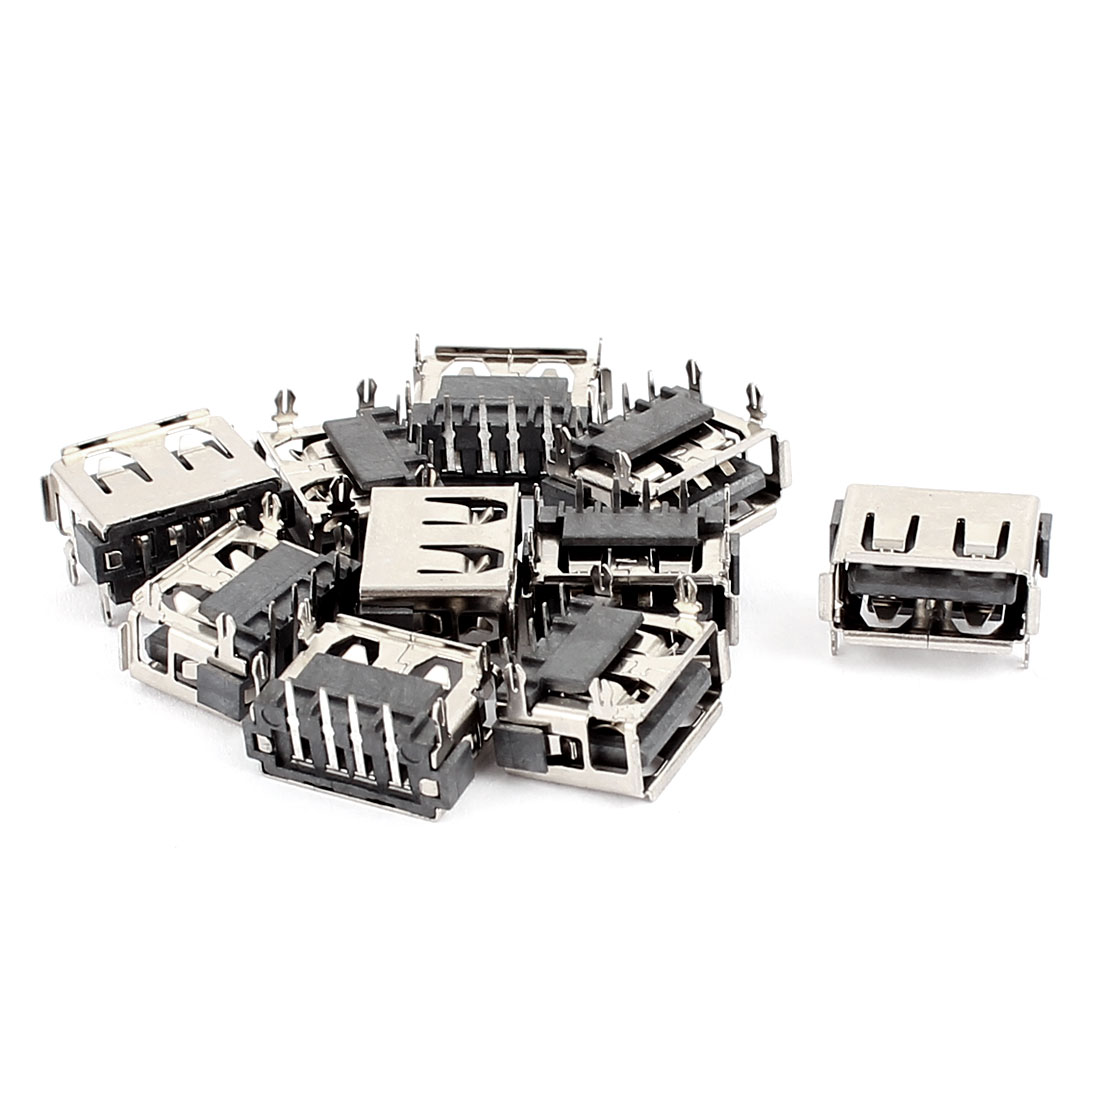 10 Pcs Type A USB 2.0 4 Right Angle Pin Female Jacks Connectors for PCB